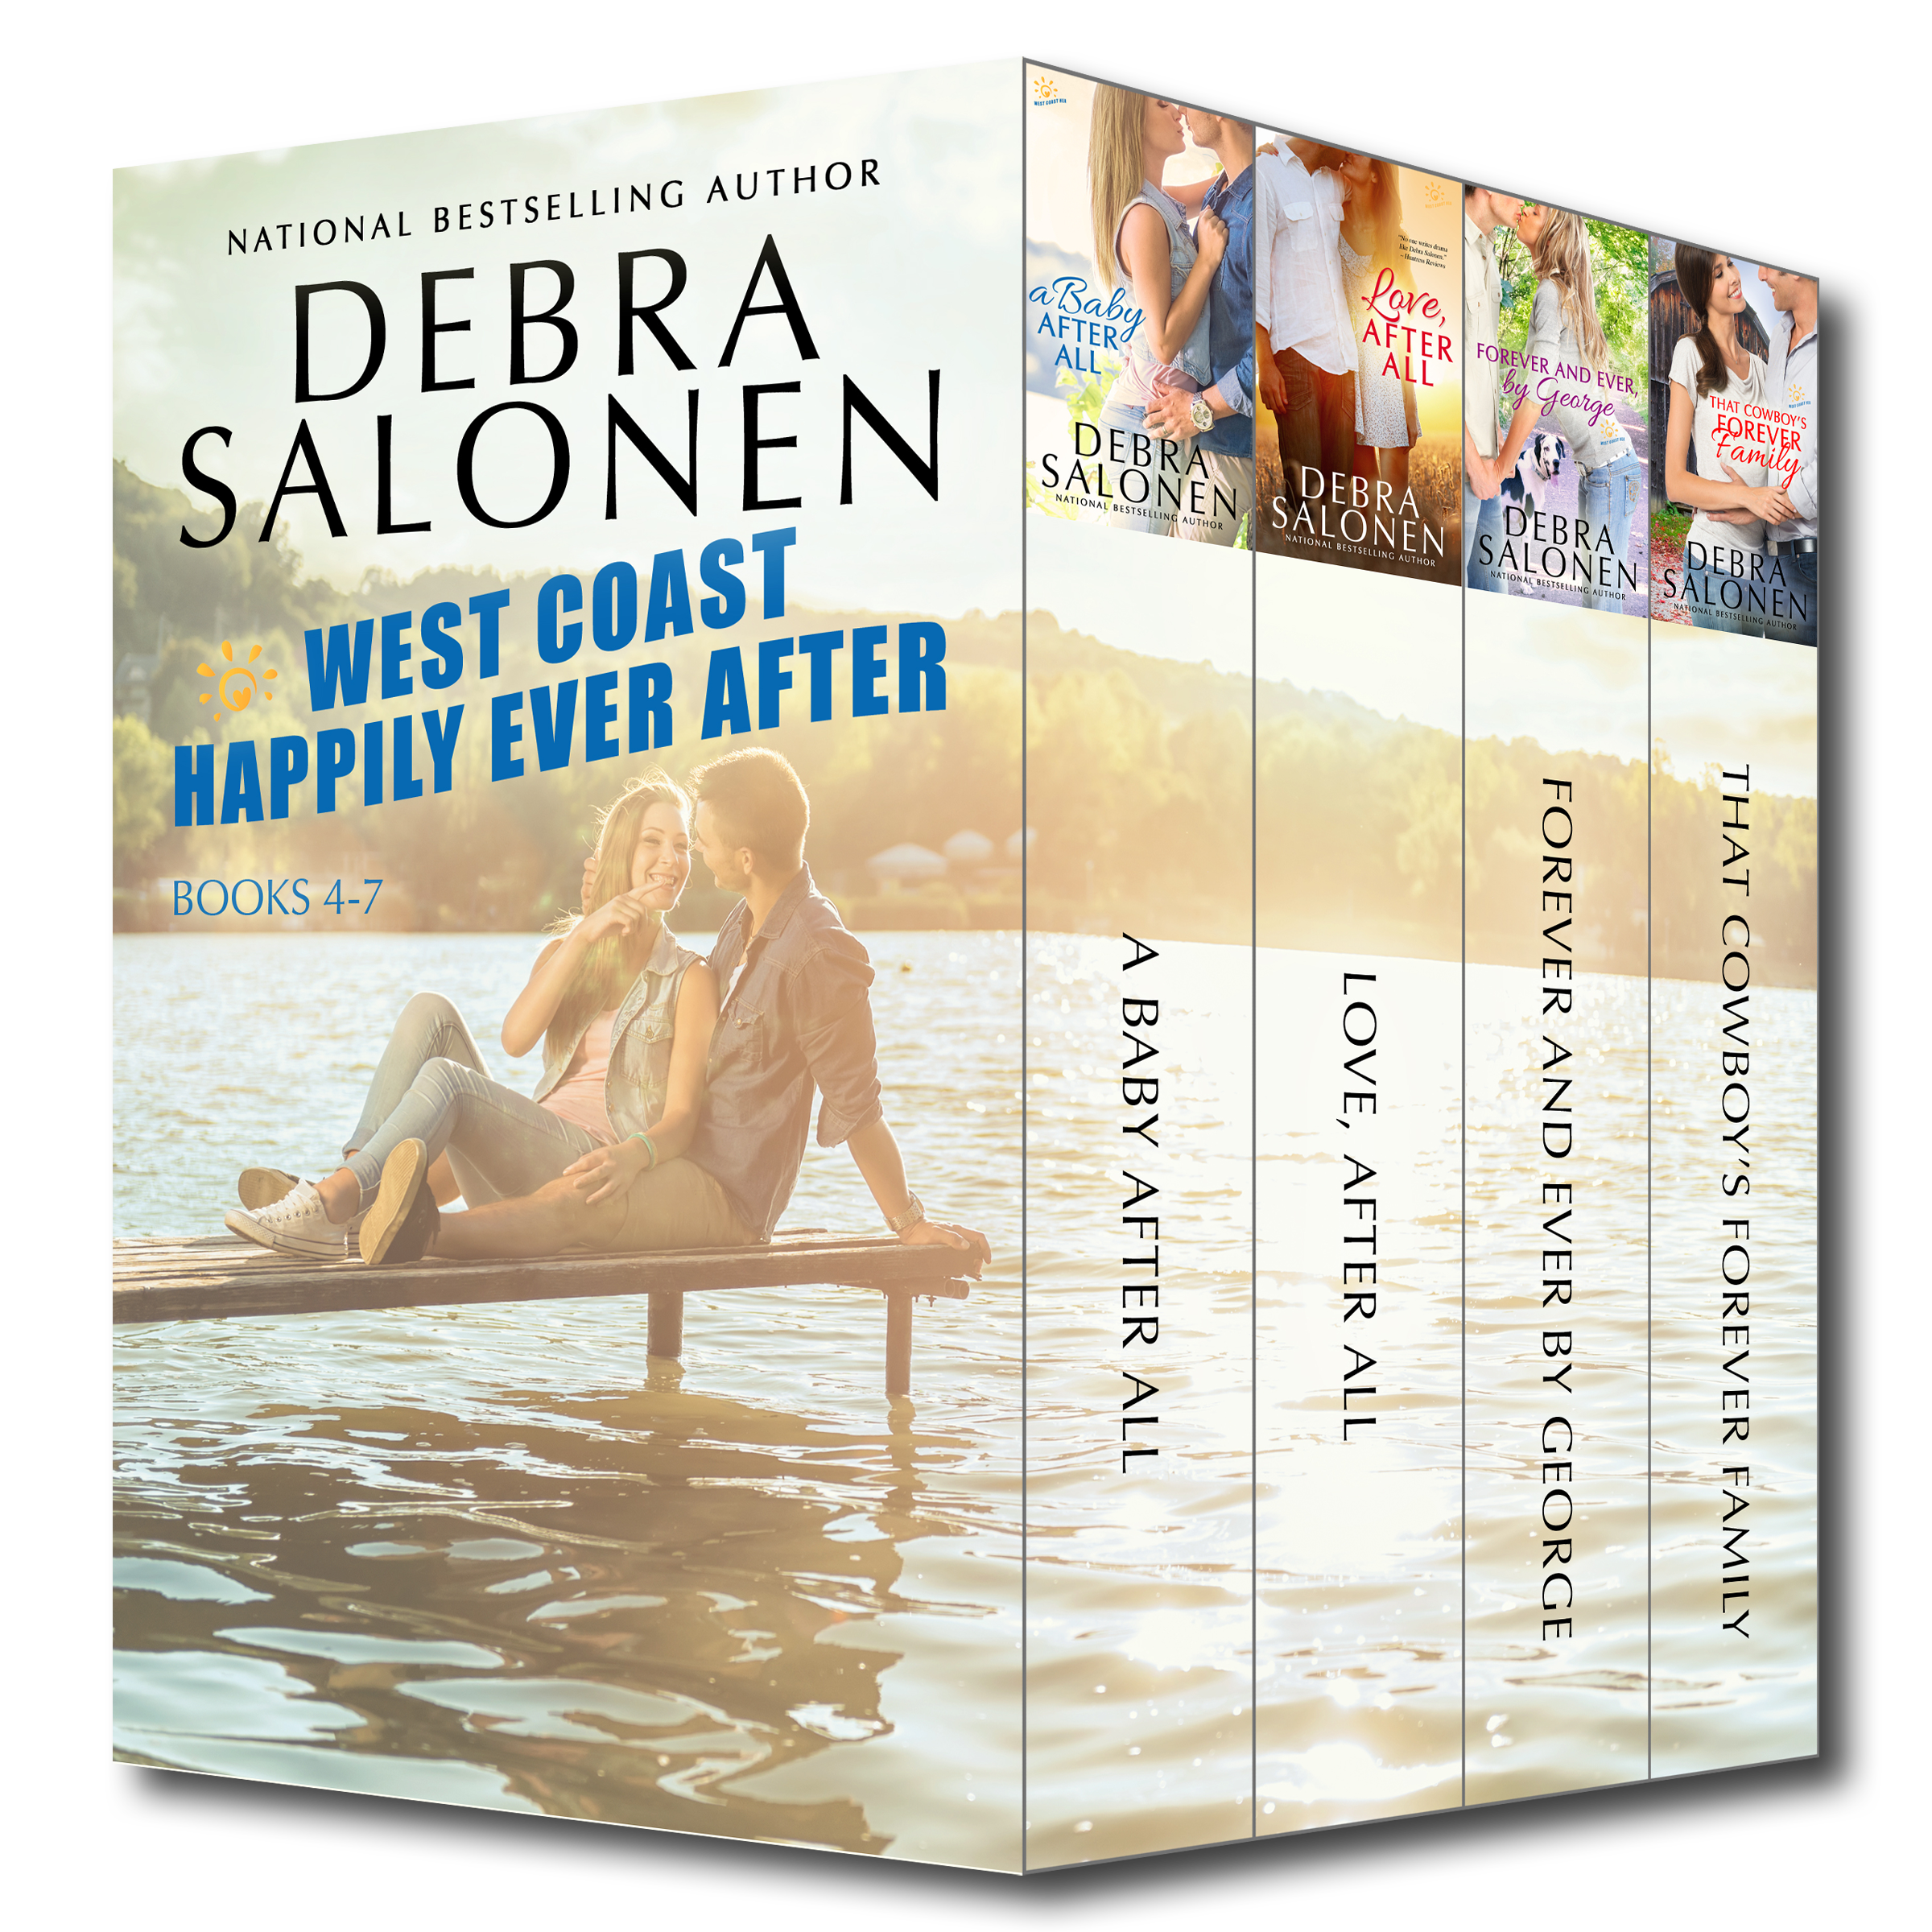 West Coast Happily Ever After Boxed Set